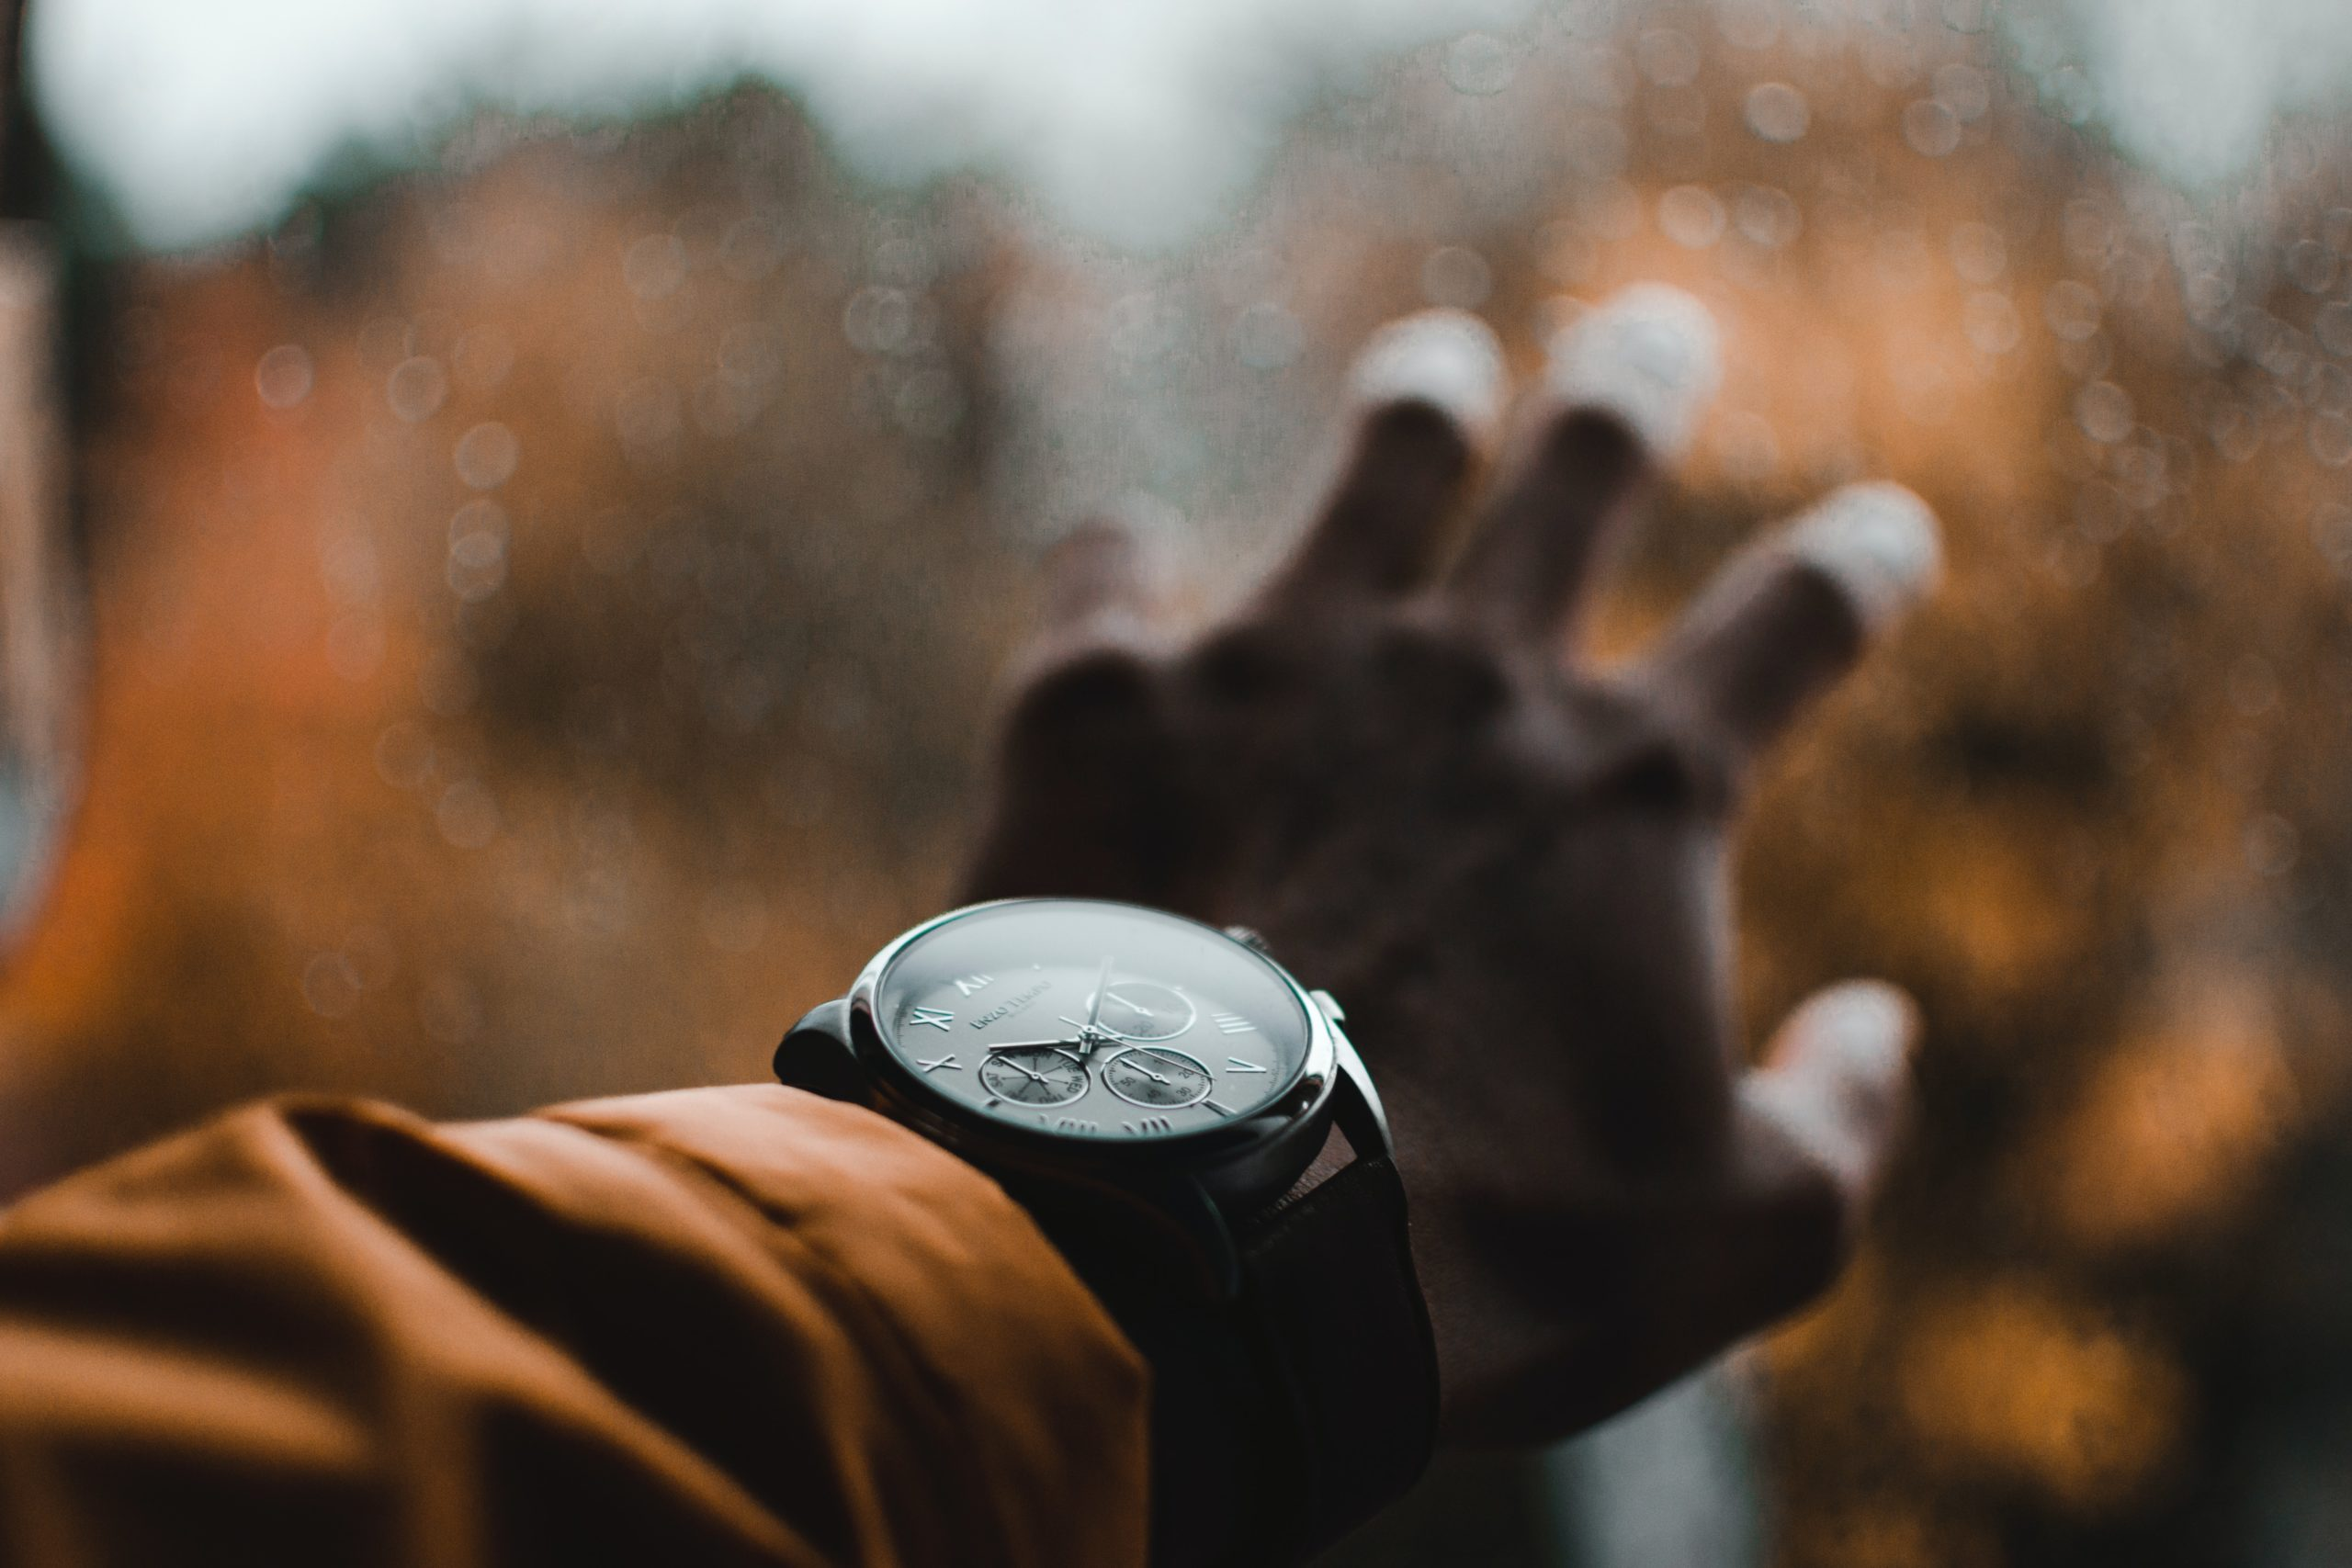 man wearing a large watch with yellow jacket holding his hand against a window in the fall